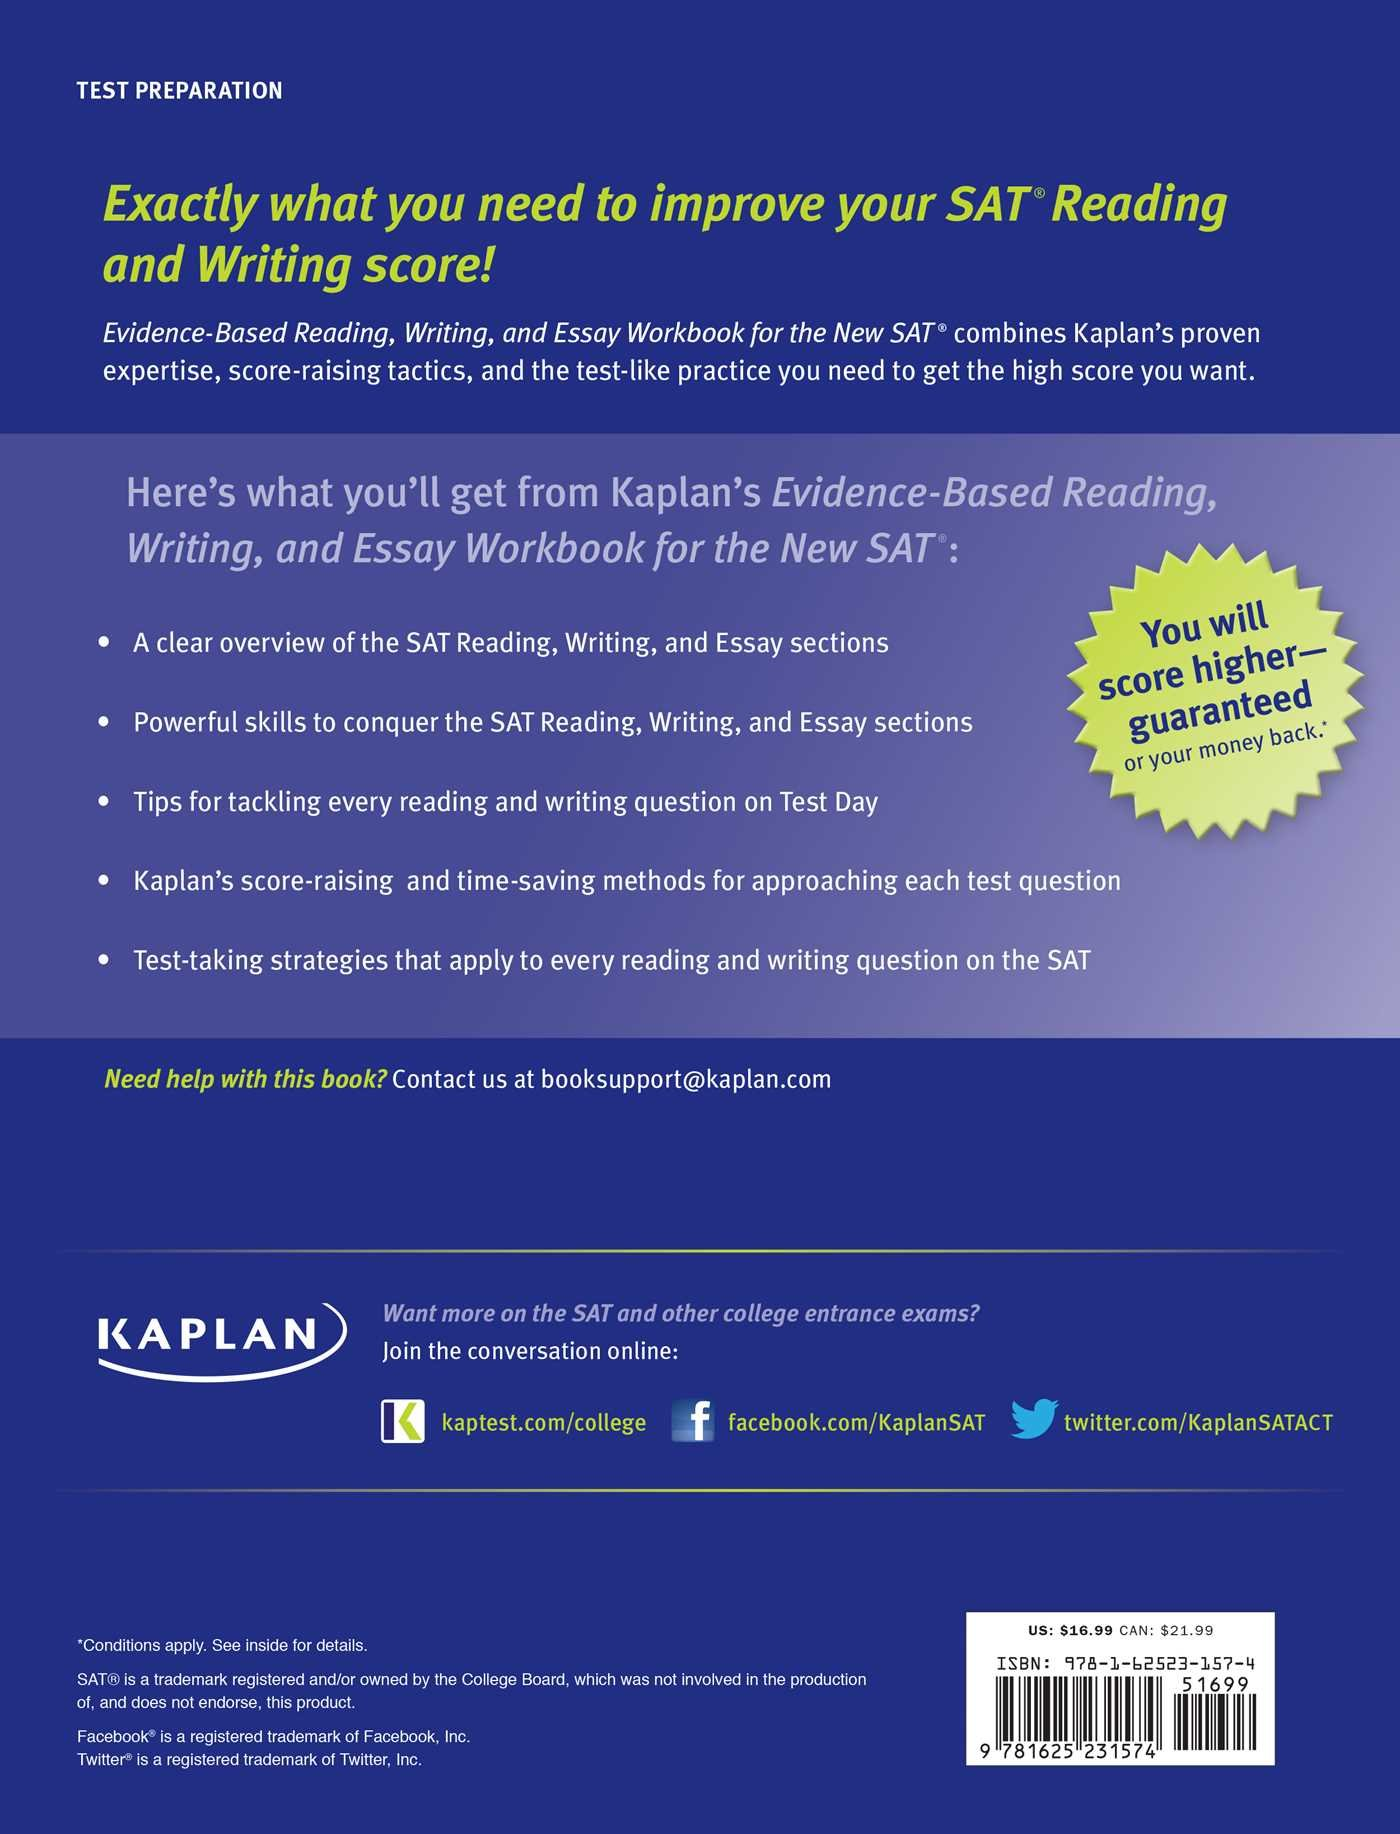 kaplan evidence based reading writing and essay workbook for the kaplan evidence based reading writing and essay workbook for the new sat kaplan test prep kaplan test prep 9781625231574 com books